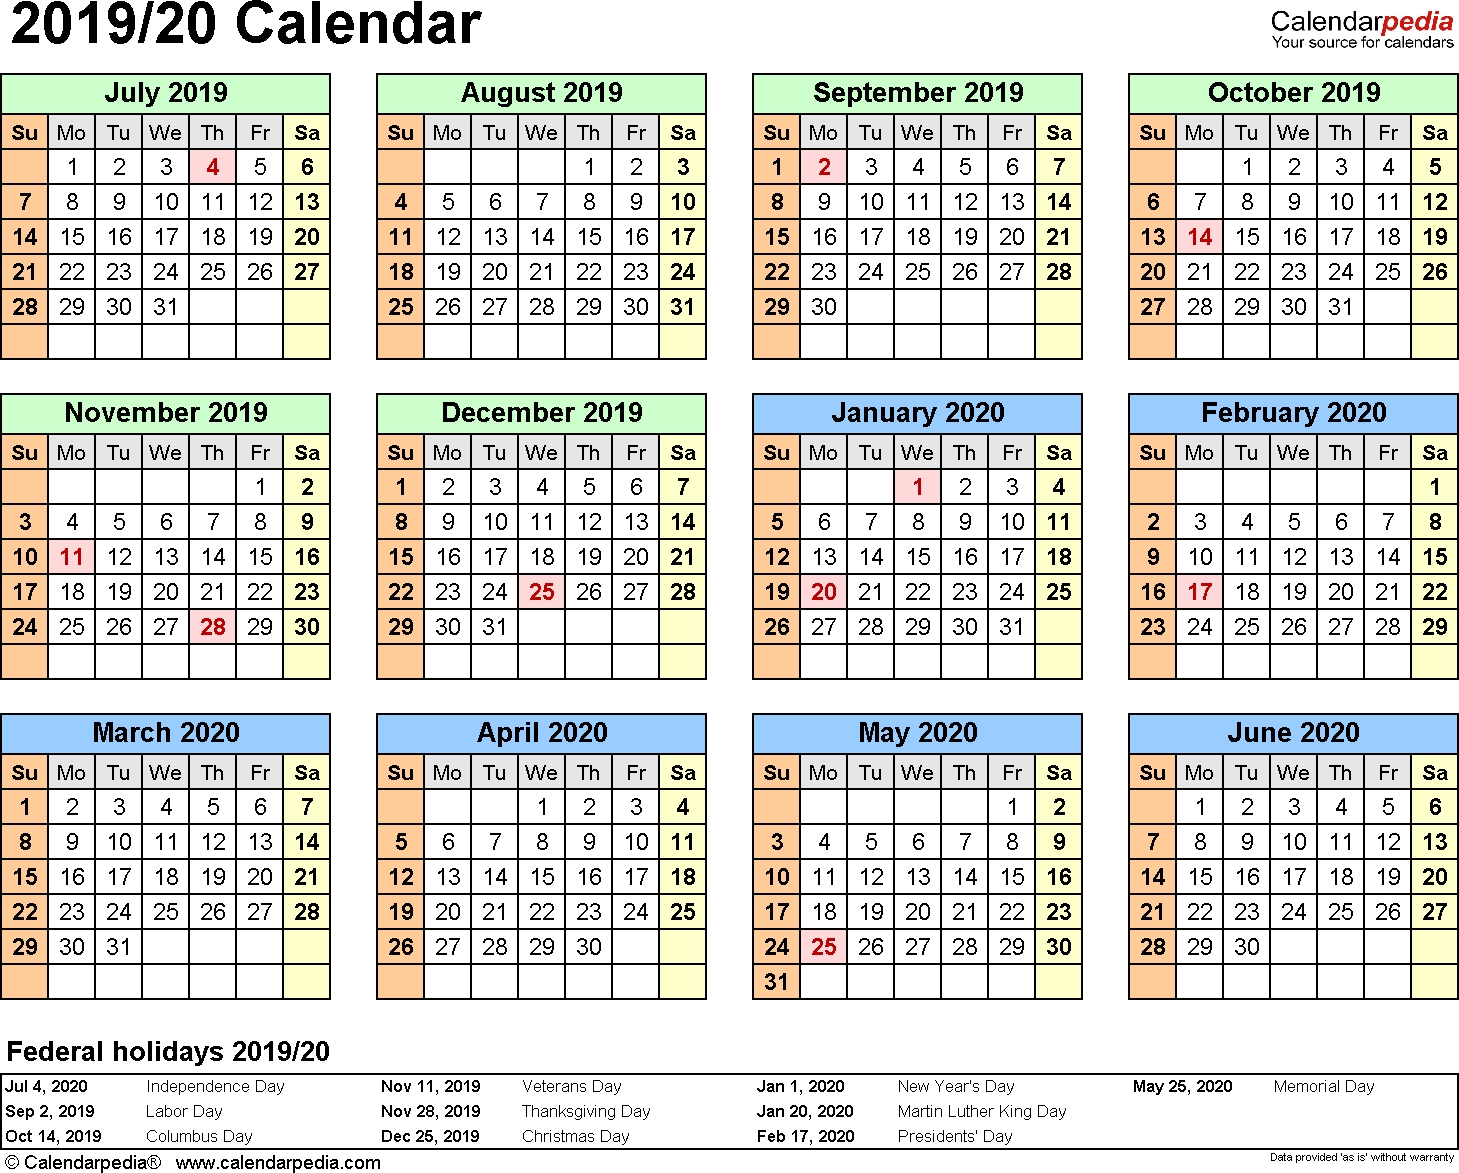 Split Year Calendar 2019/20 (July To June) - Excel Templates regarding Year At A Glance 2019-2020